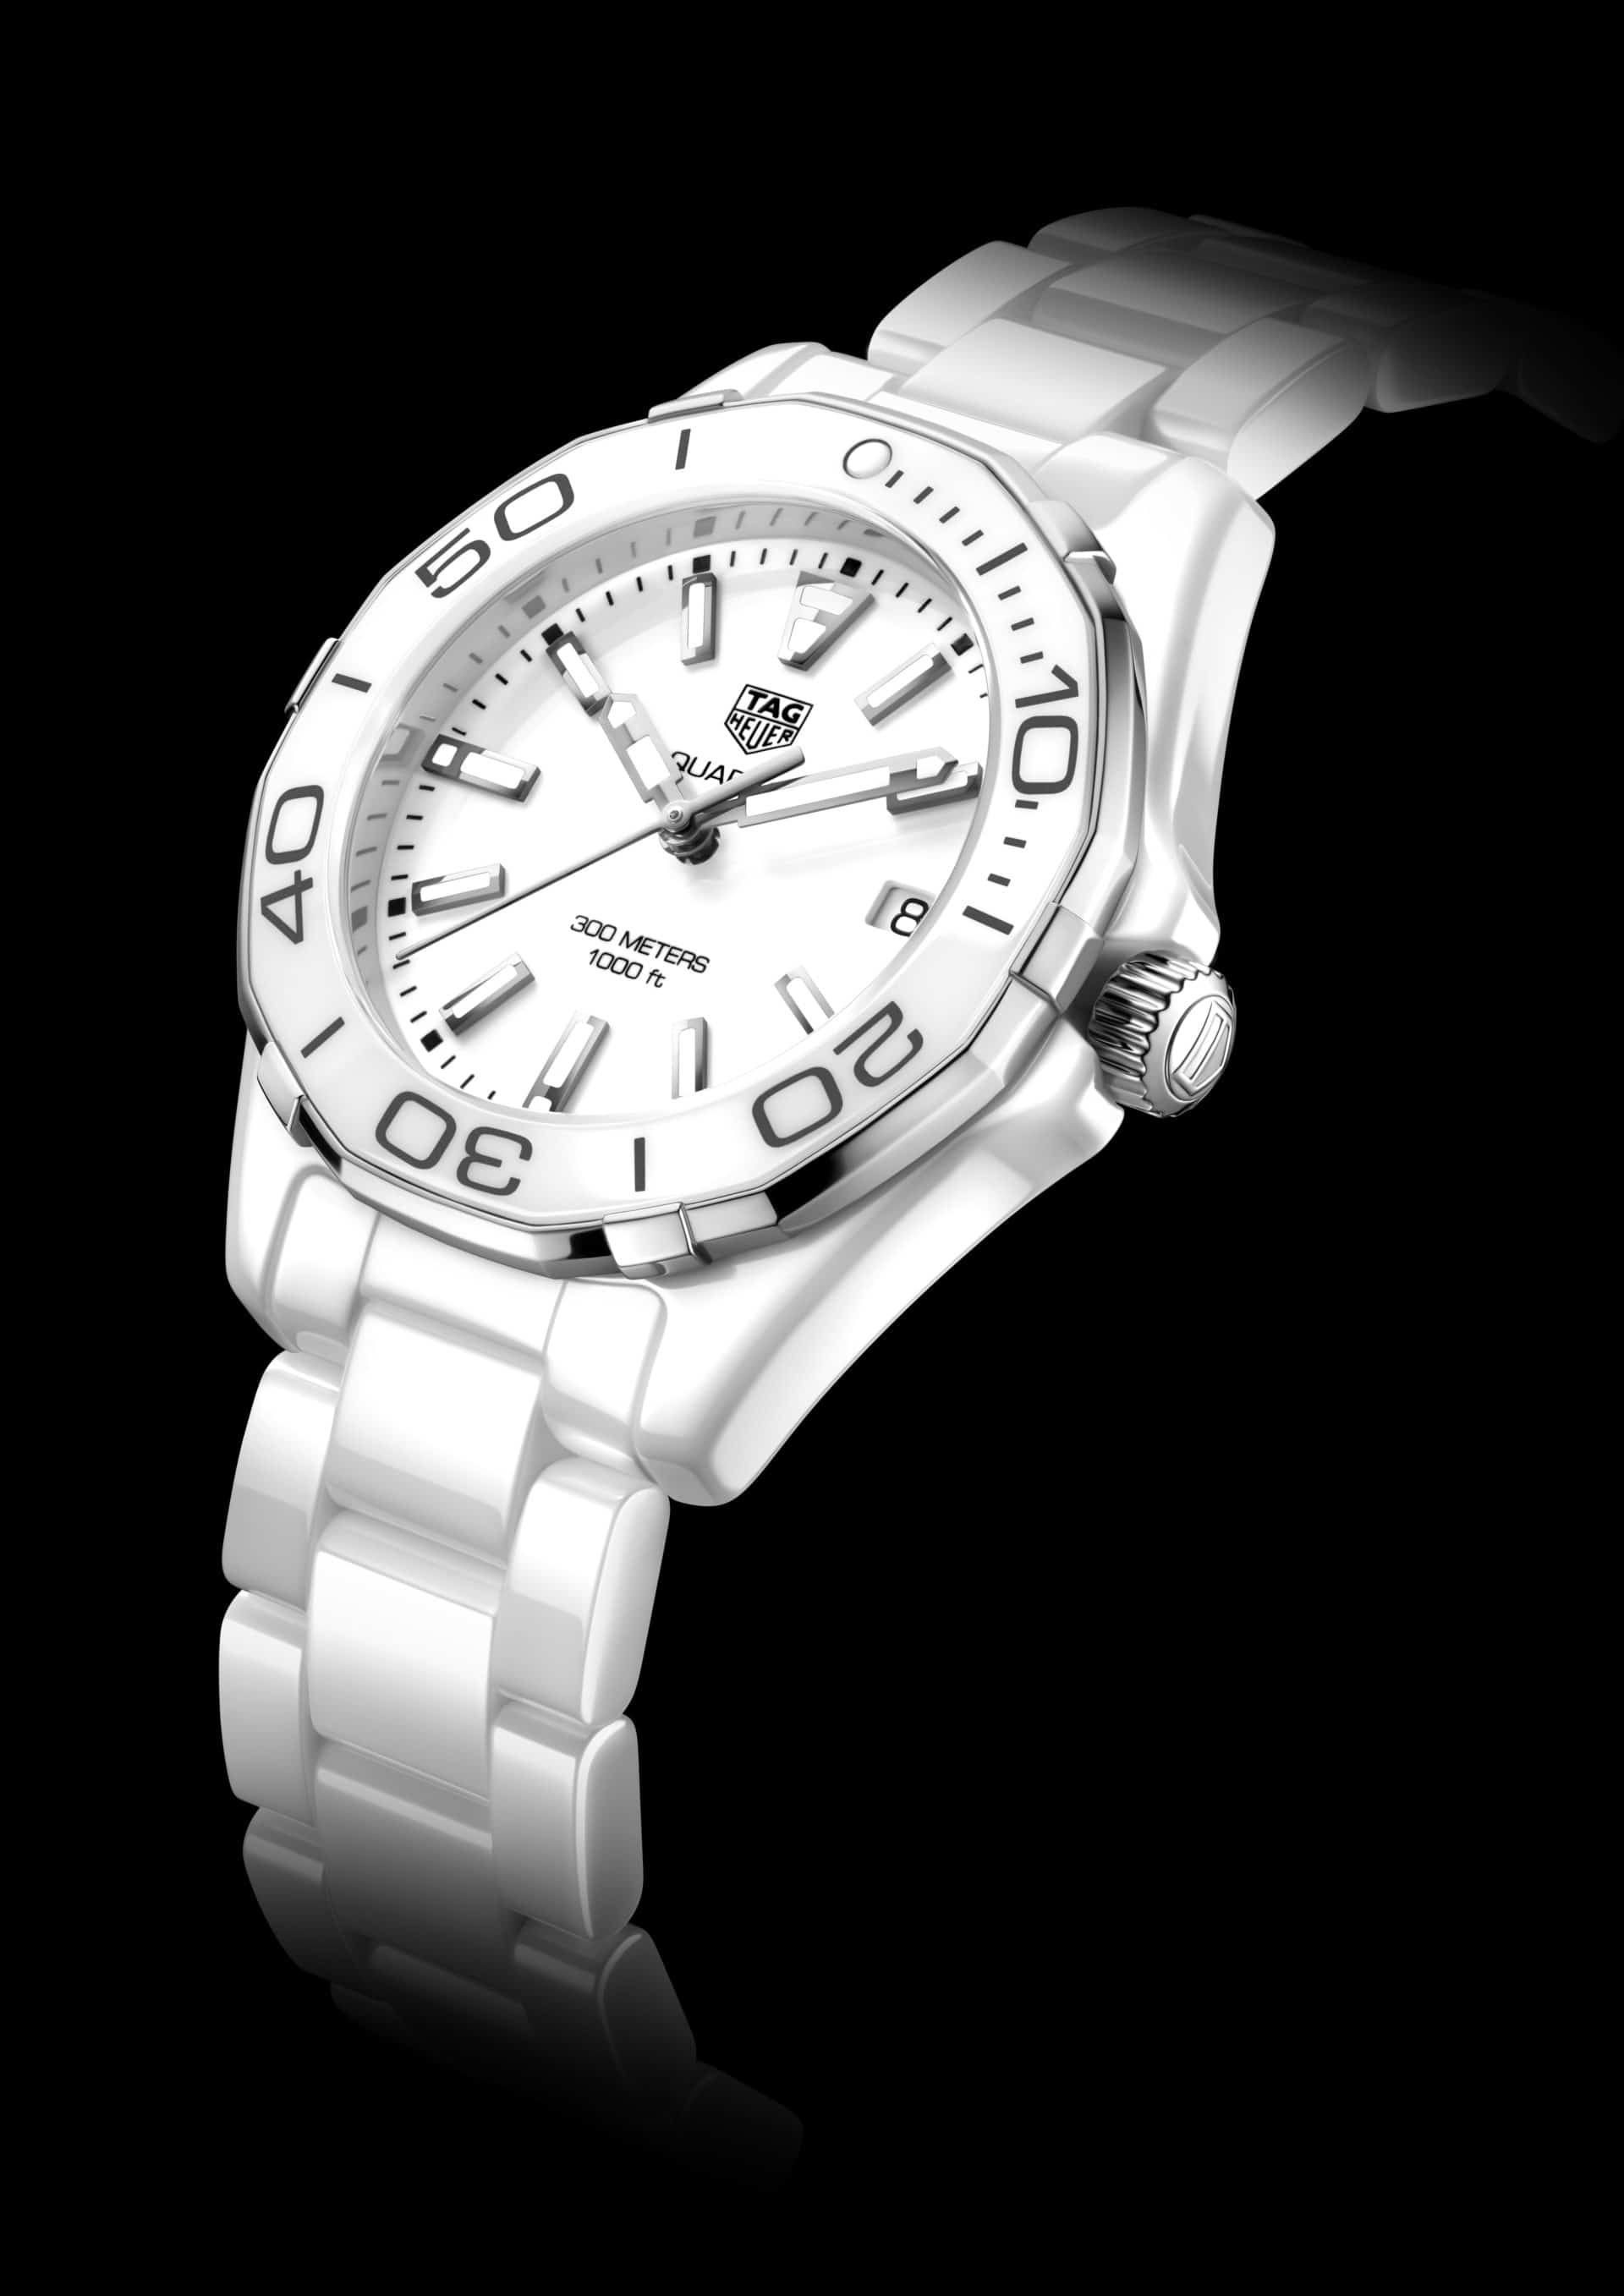 5. AQUARACER 300M LADIES 2016_PHOTOS_WAY1391.BH0717 AQRC FULL WHITE CERAMIC - PR VIEW 2016